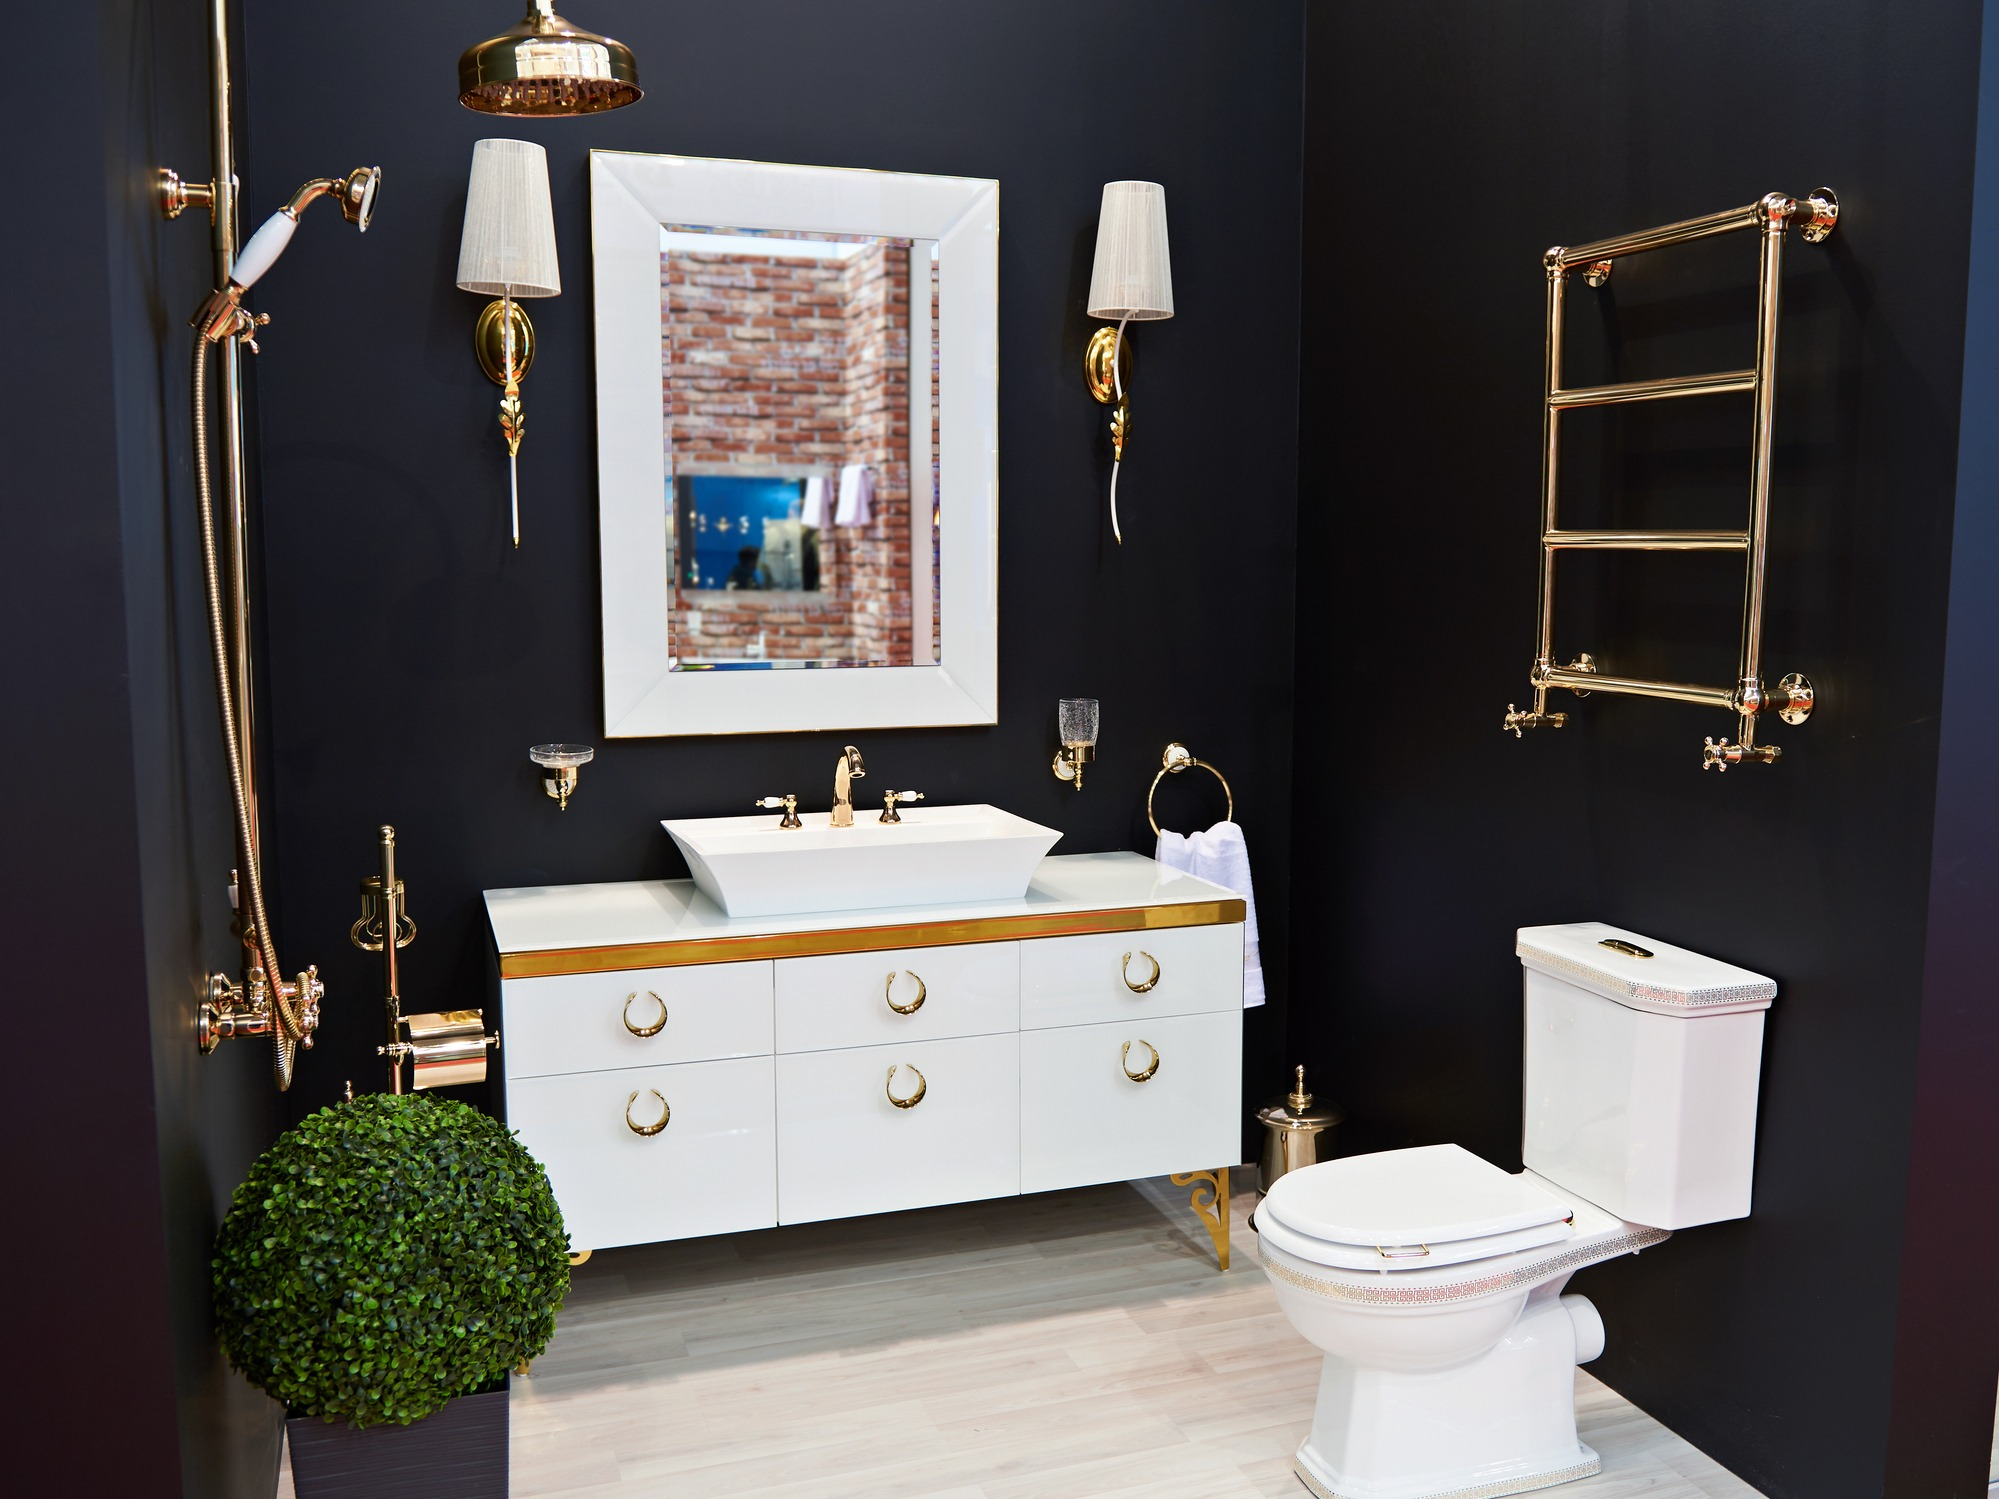 Luxurious washbasin toilet shower and mirror in the bathroom